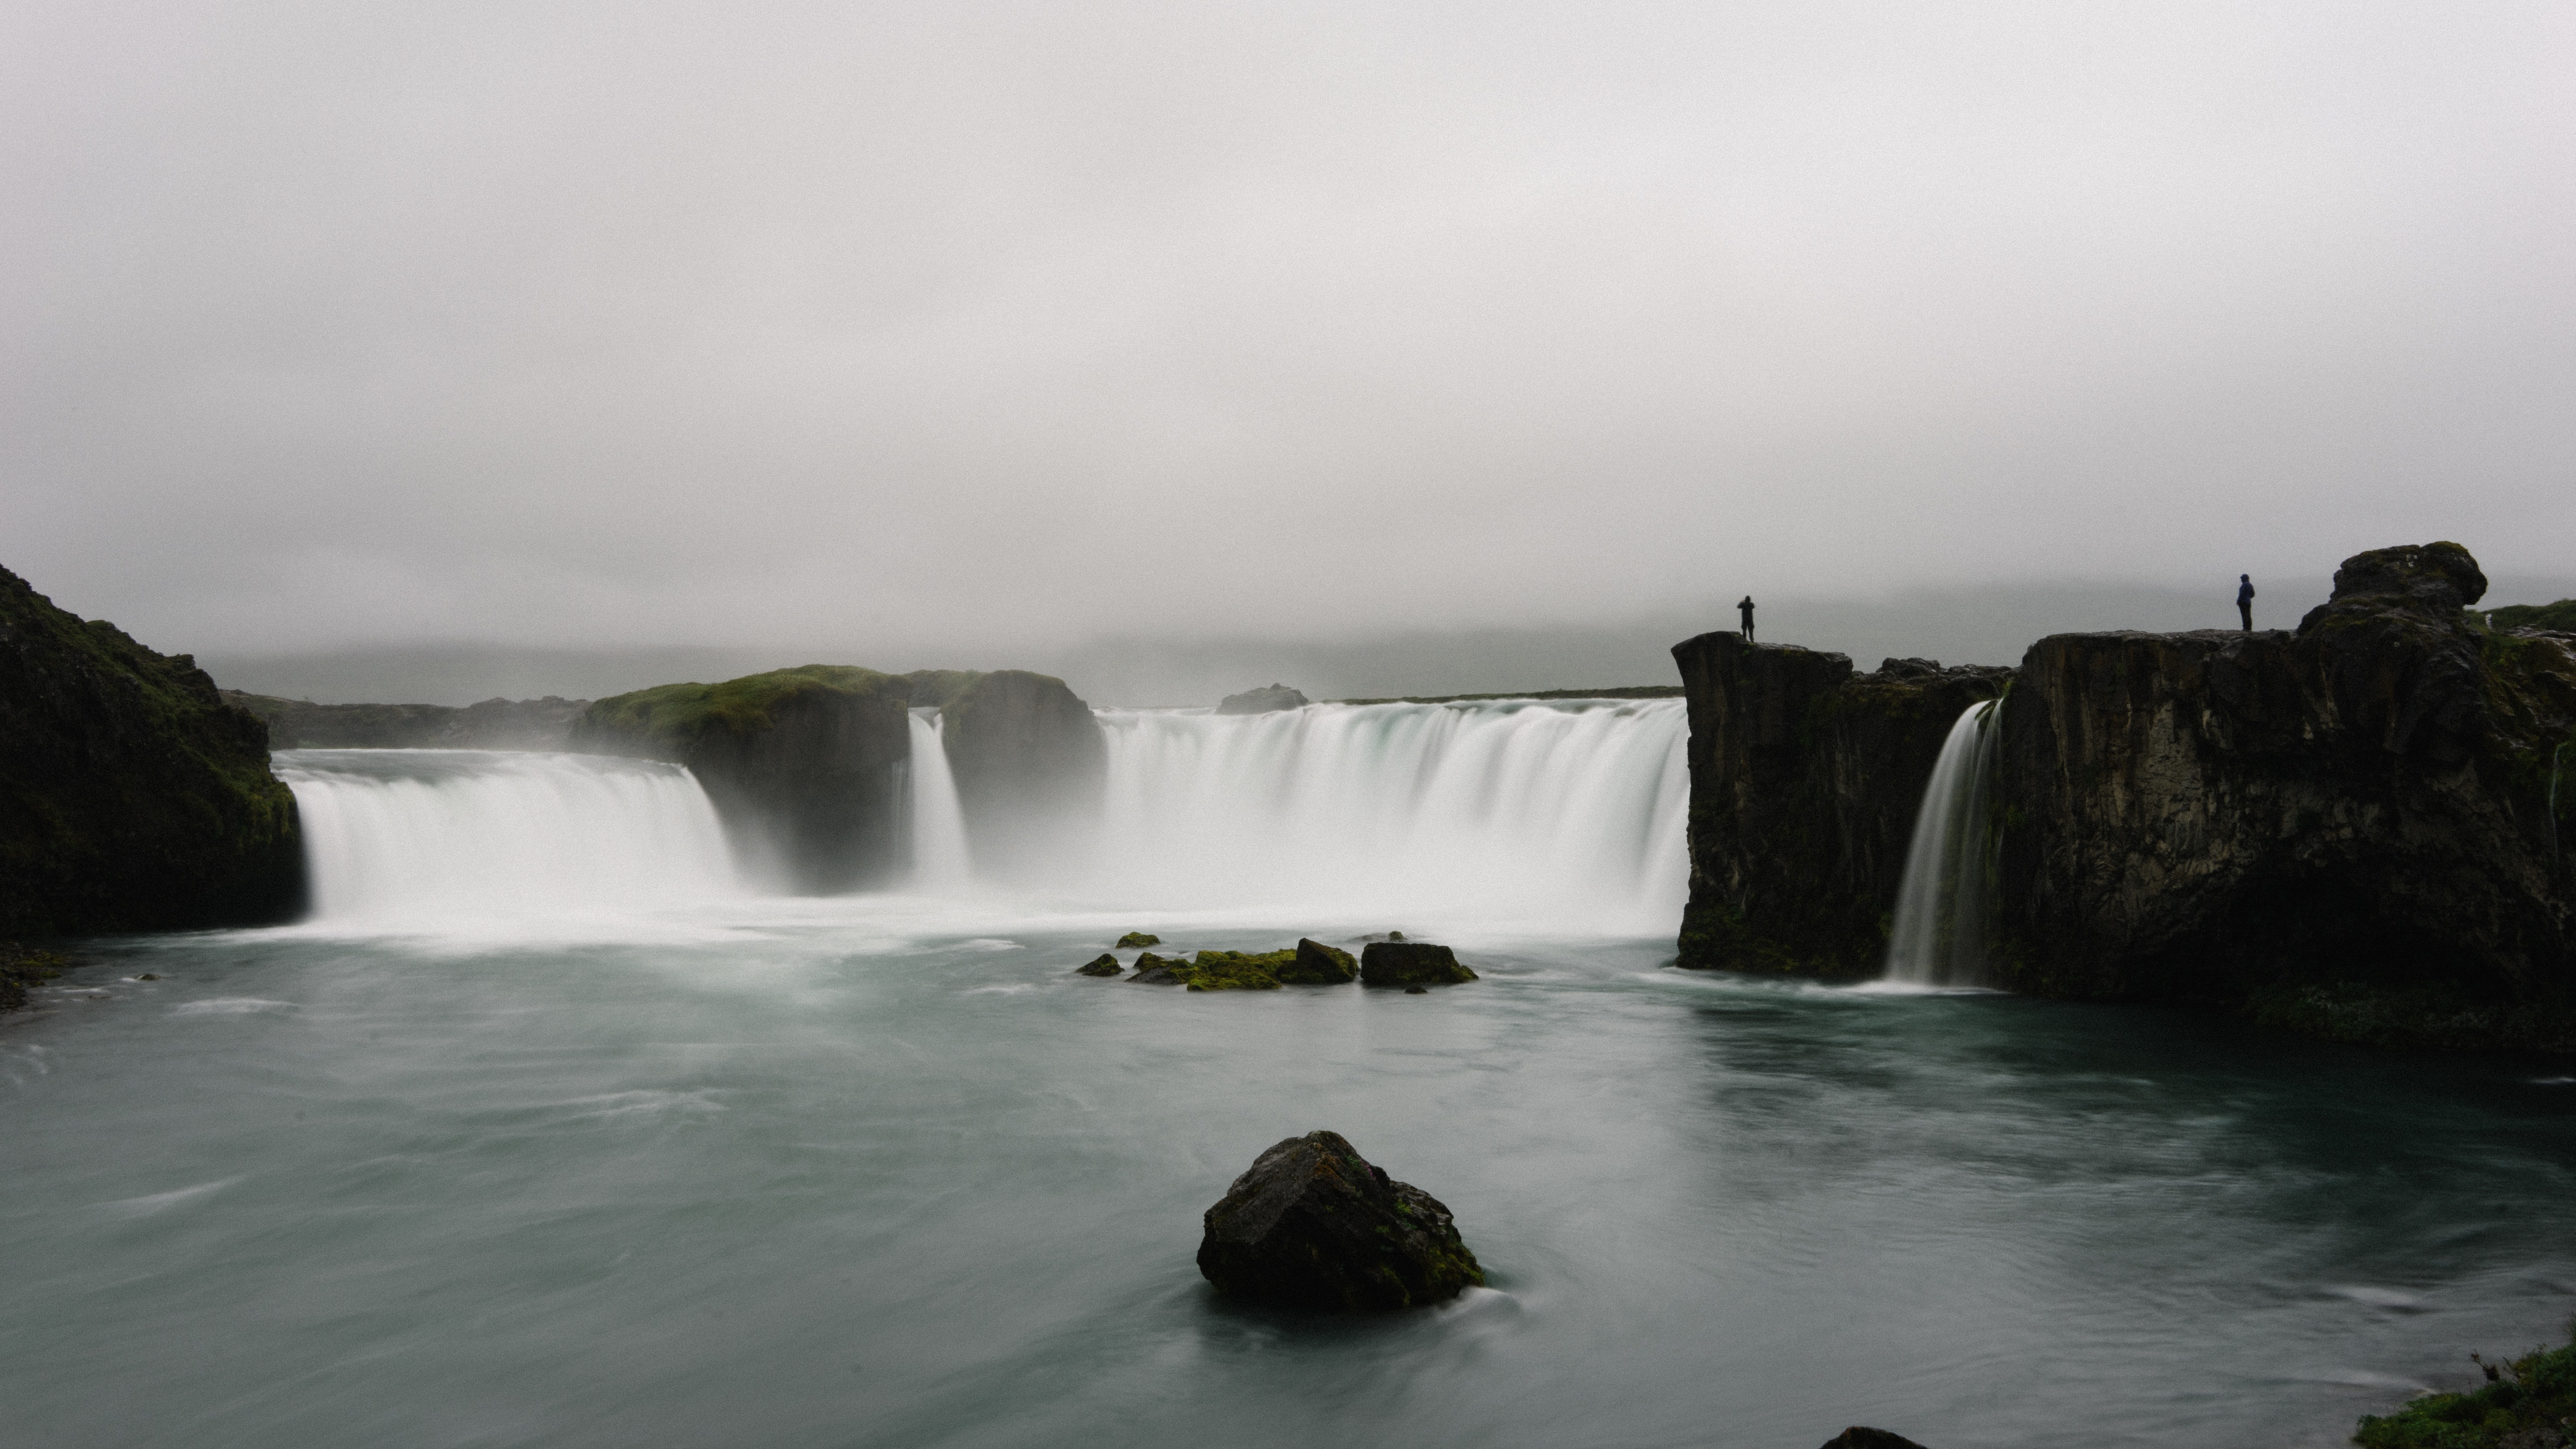 A gray image capturing two waterfalls streaming into a pool of water